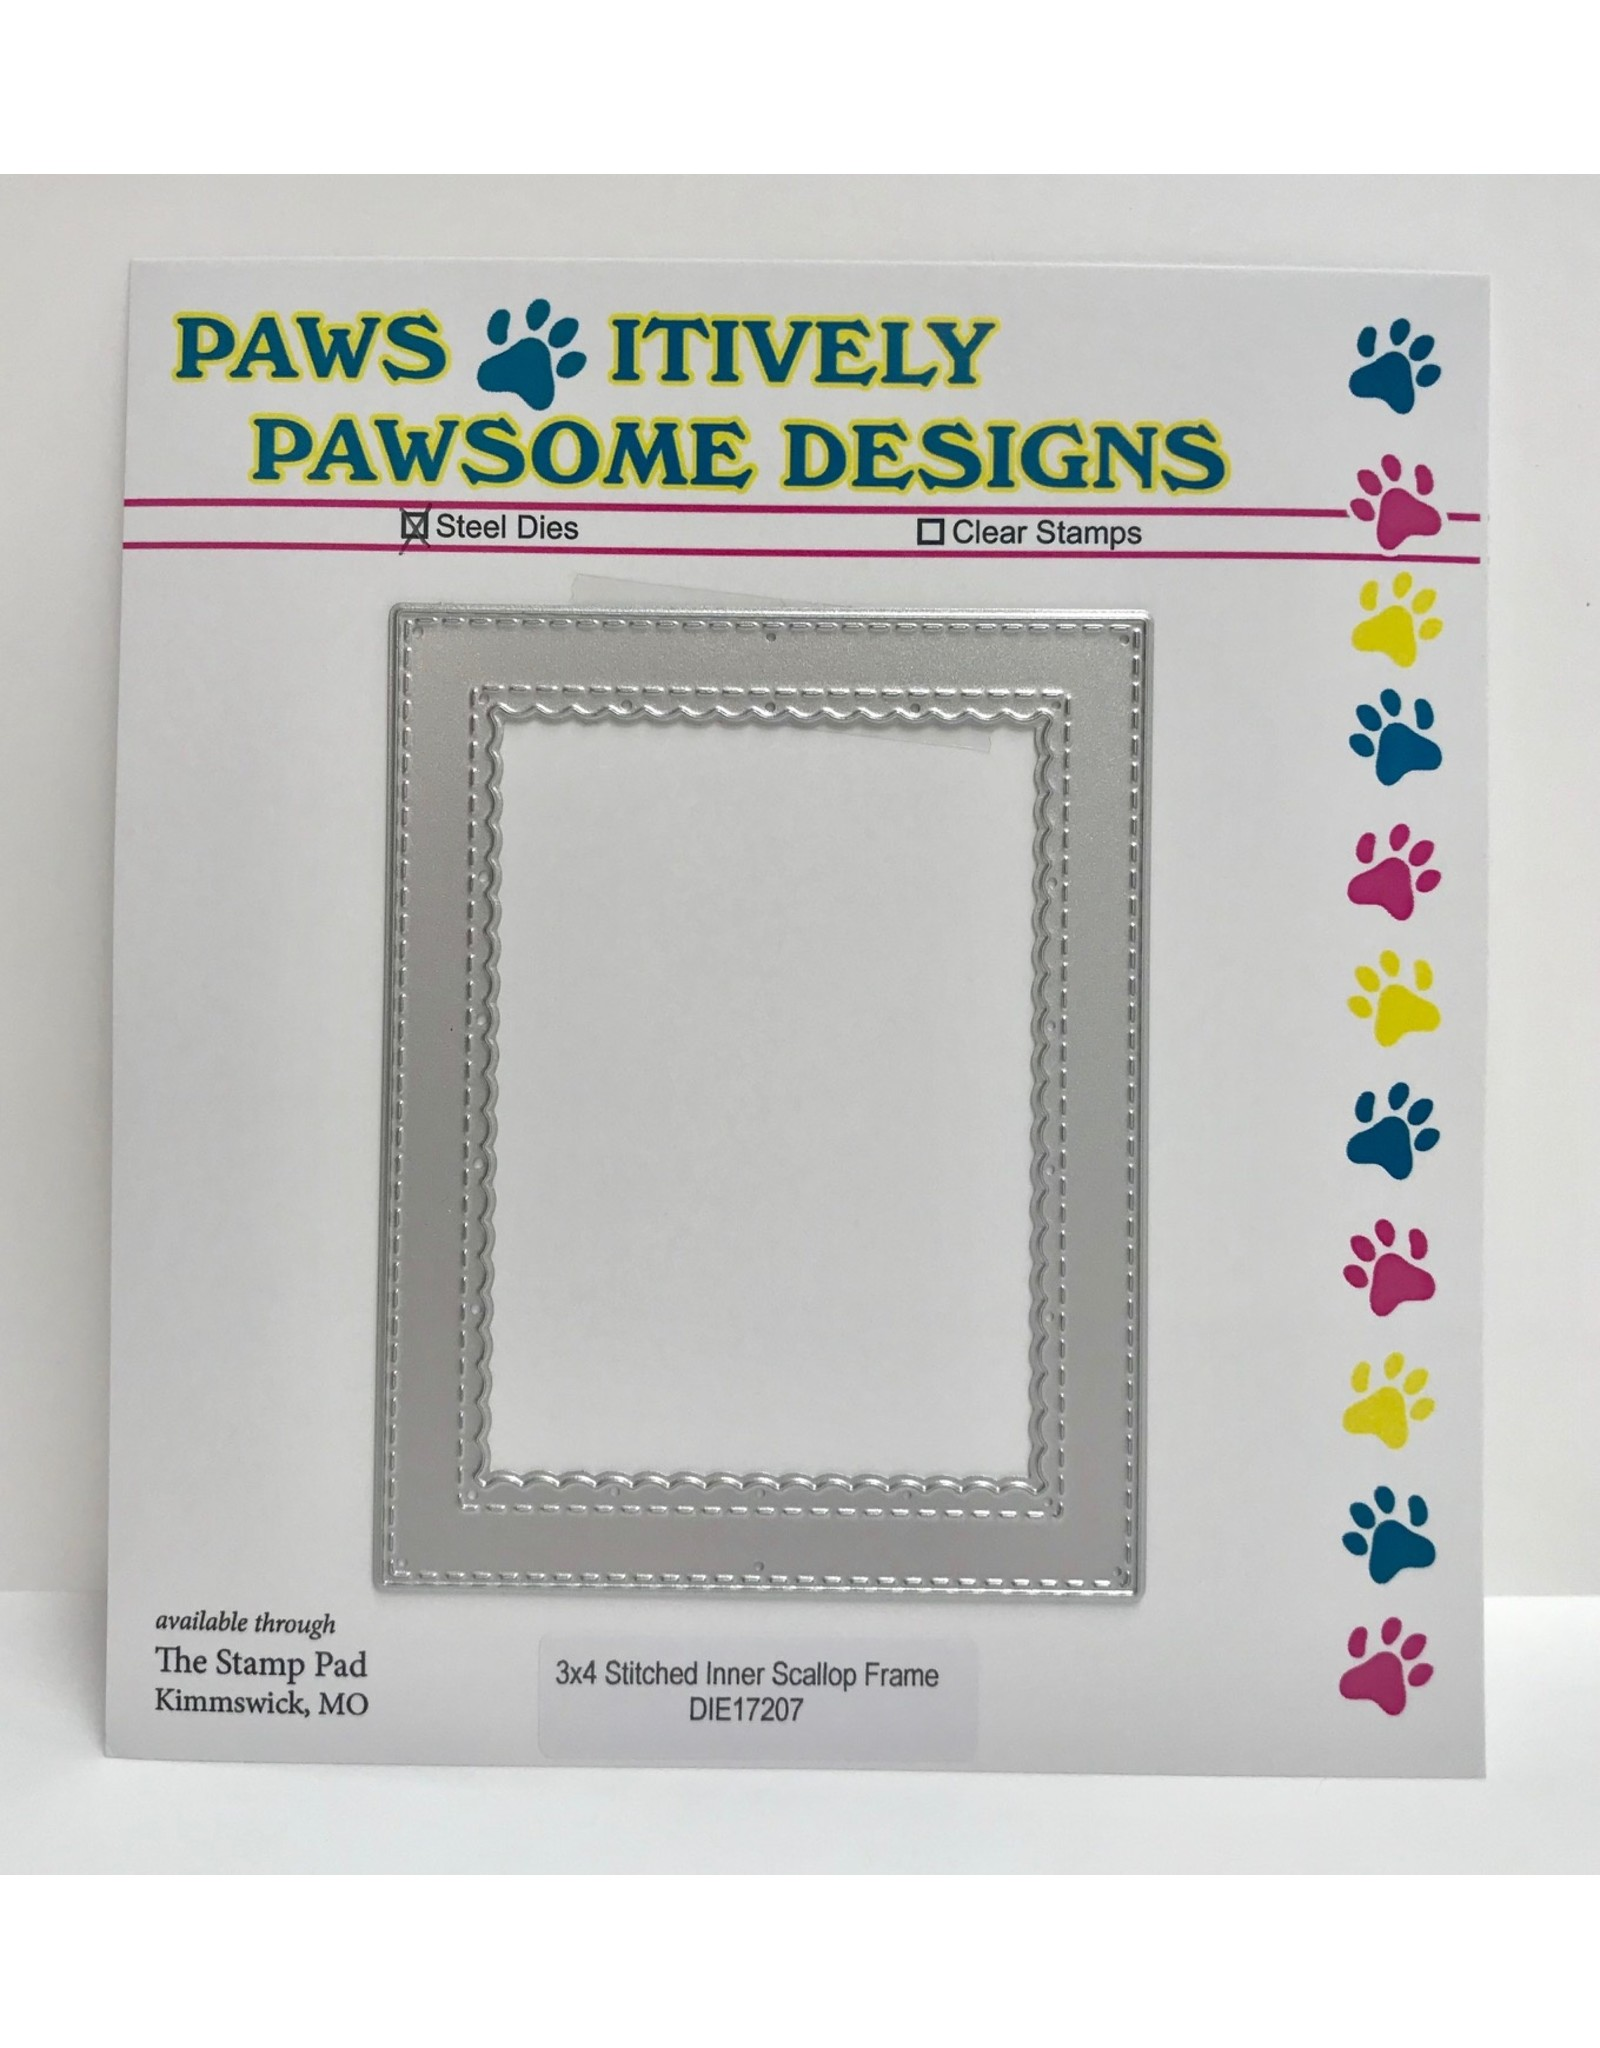 Paws-Itively Pawsome Designs 3x4 Stitched Inner Scallop Frame - Die